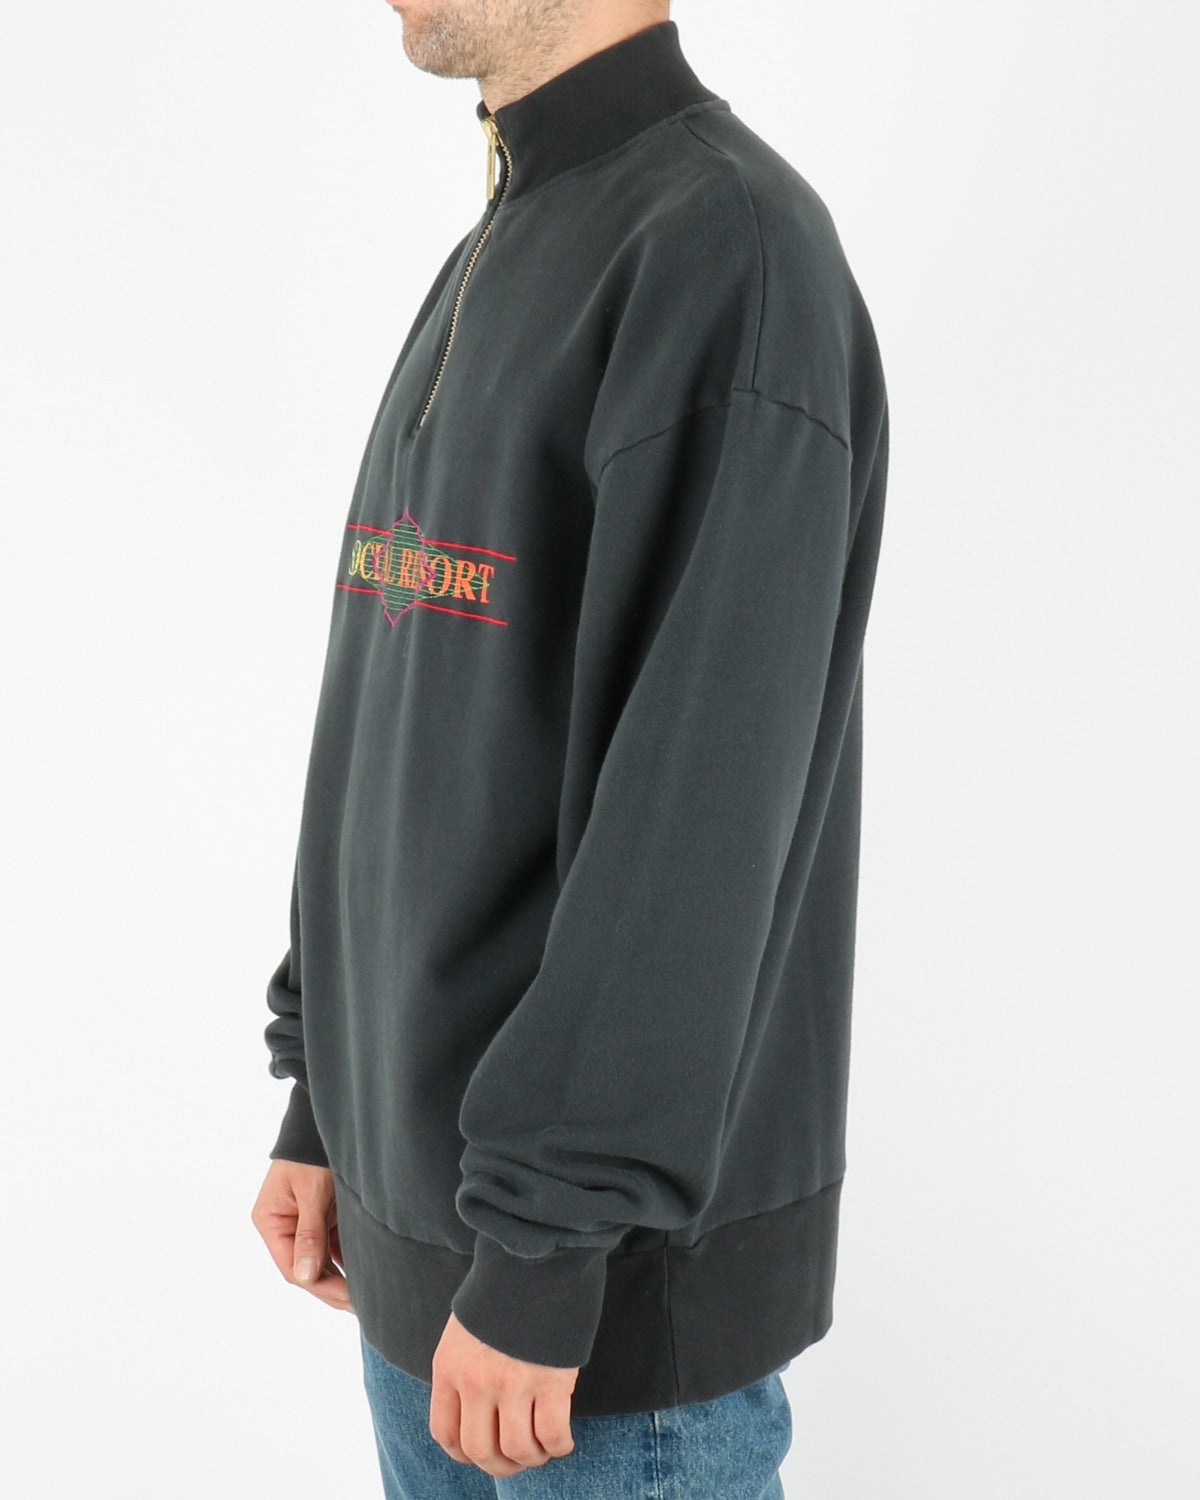 han kjobenhavn_half zip sweat_faded black_2_3